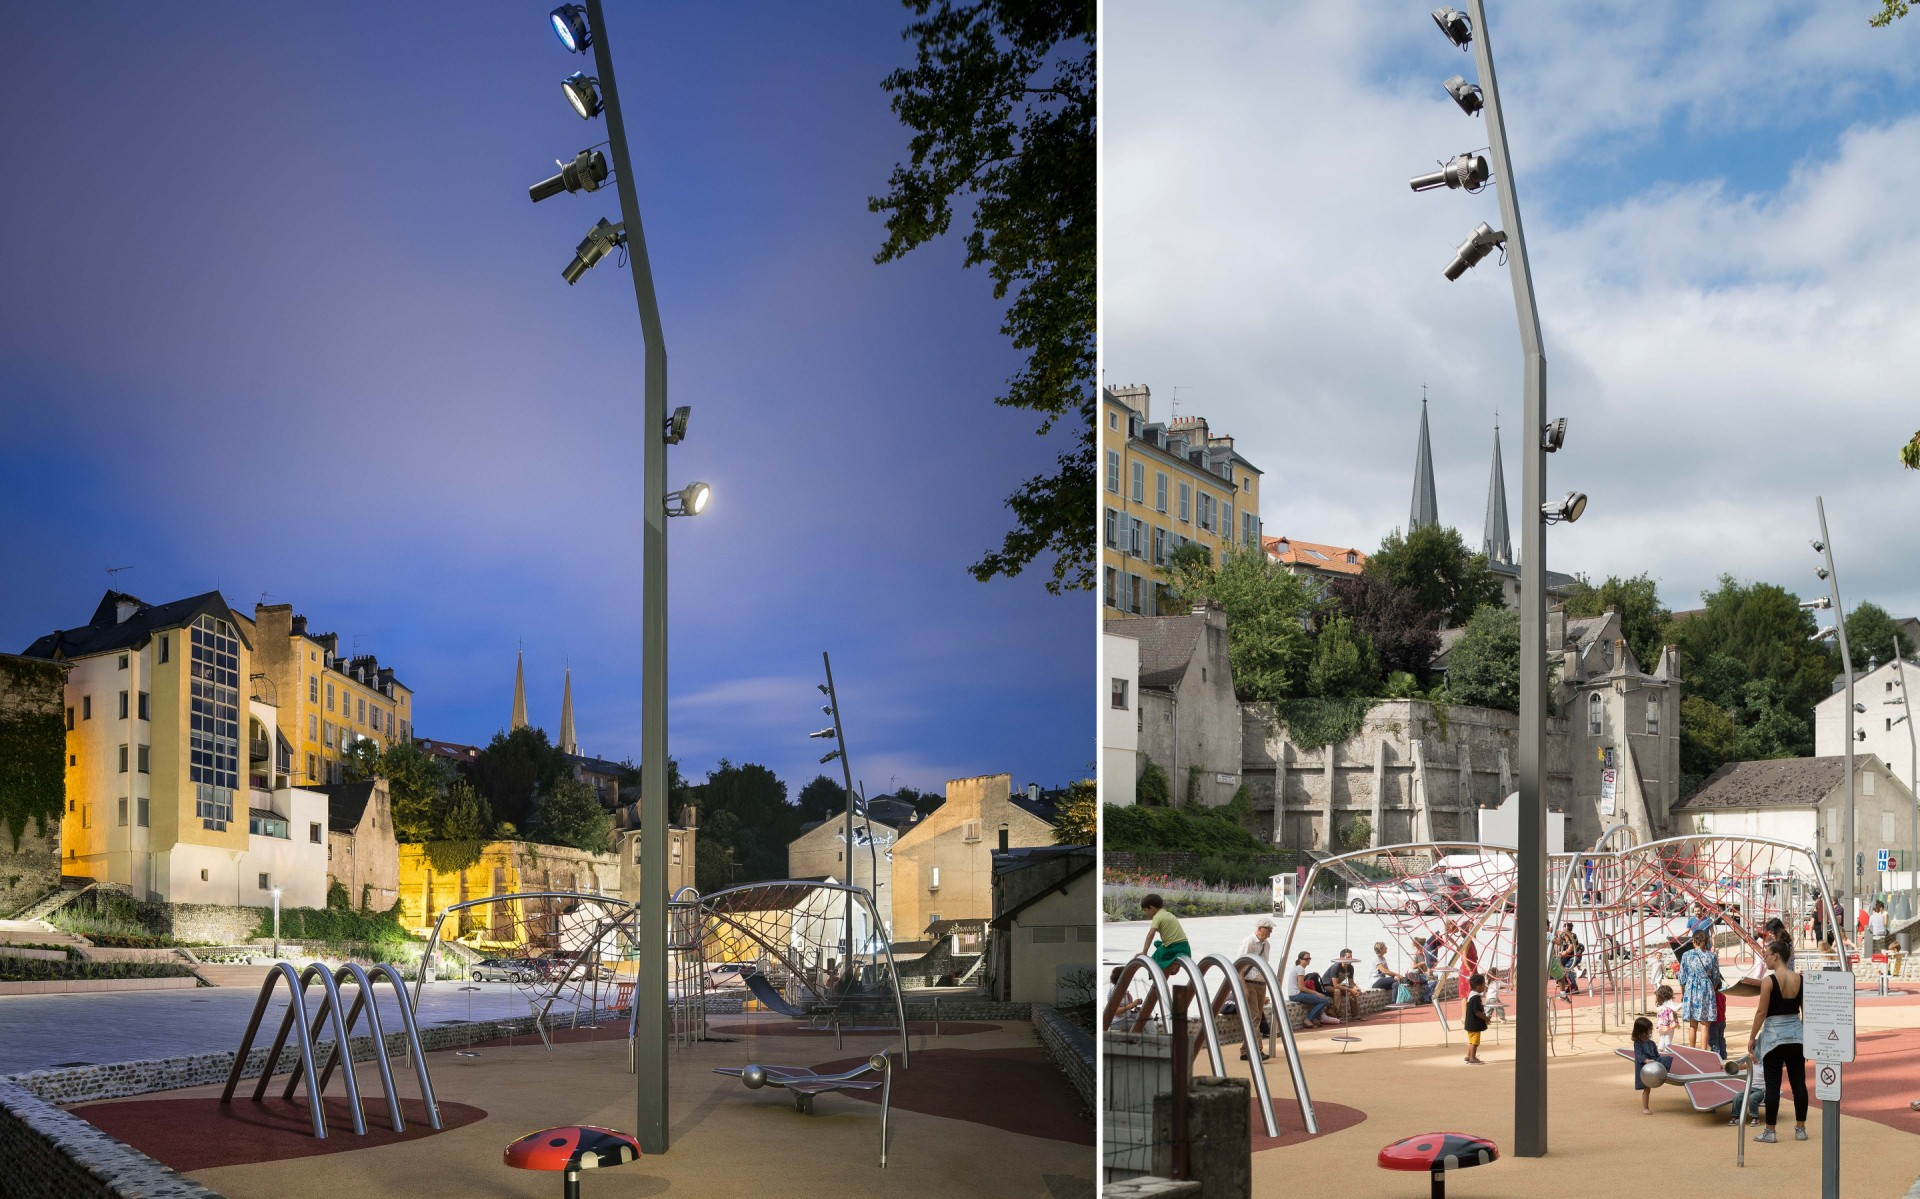 The Lumenpulse Lumenbeam luminaires mounted on two 34-foot tall (10.5m) masts light the play areas.